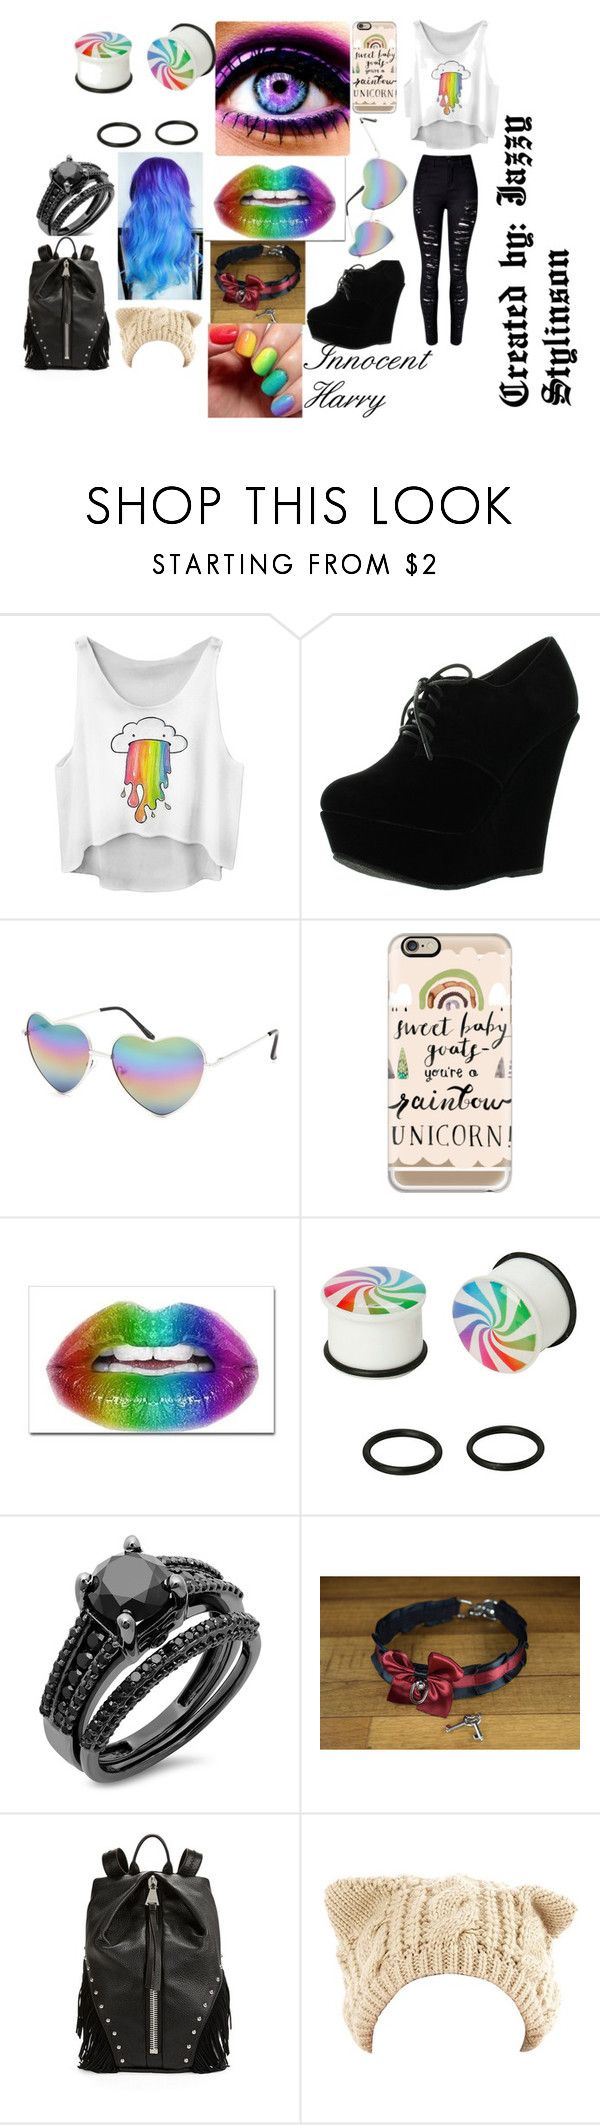 """""""Innocent Fem! Harry"""" by melody-cullen ❤ liked on Polyvore featuring Forever Link, Full Tilt, Casetify, Aimee Kestenberg, women's clothing, women, female, woman, misses and juniors"""